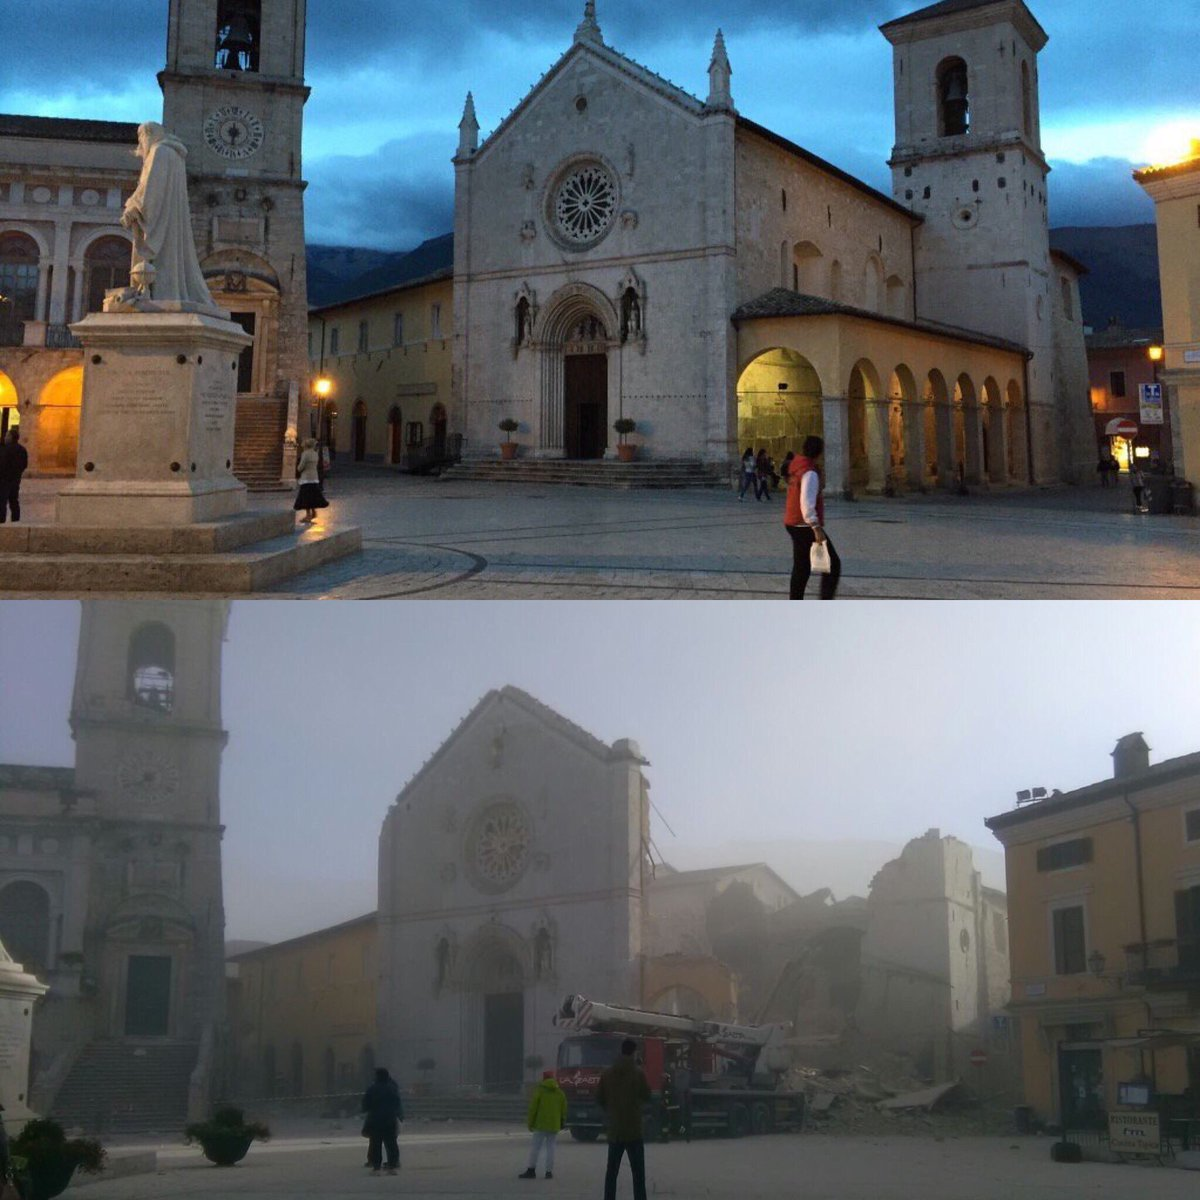 È un disastro #Norcia #terremoto #earthquake #italy https://t.co/qqPEGGy7Jx